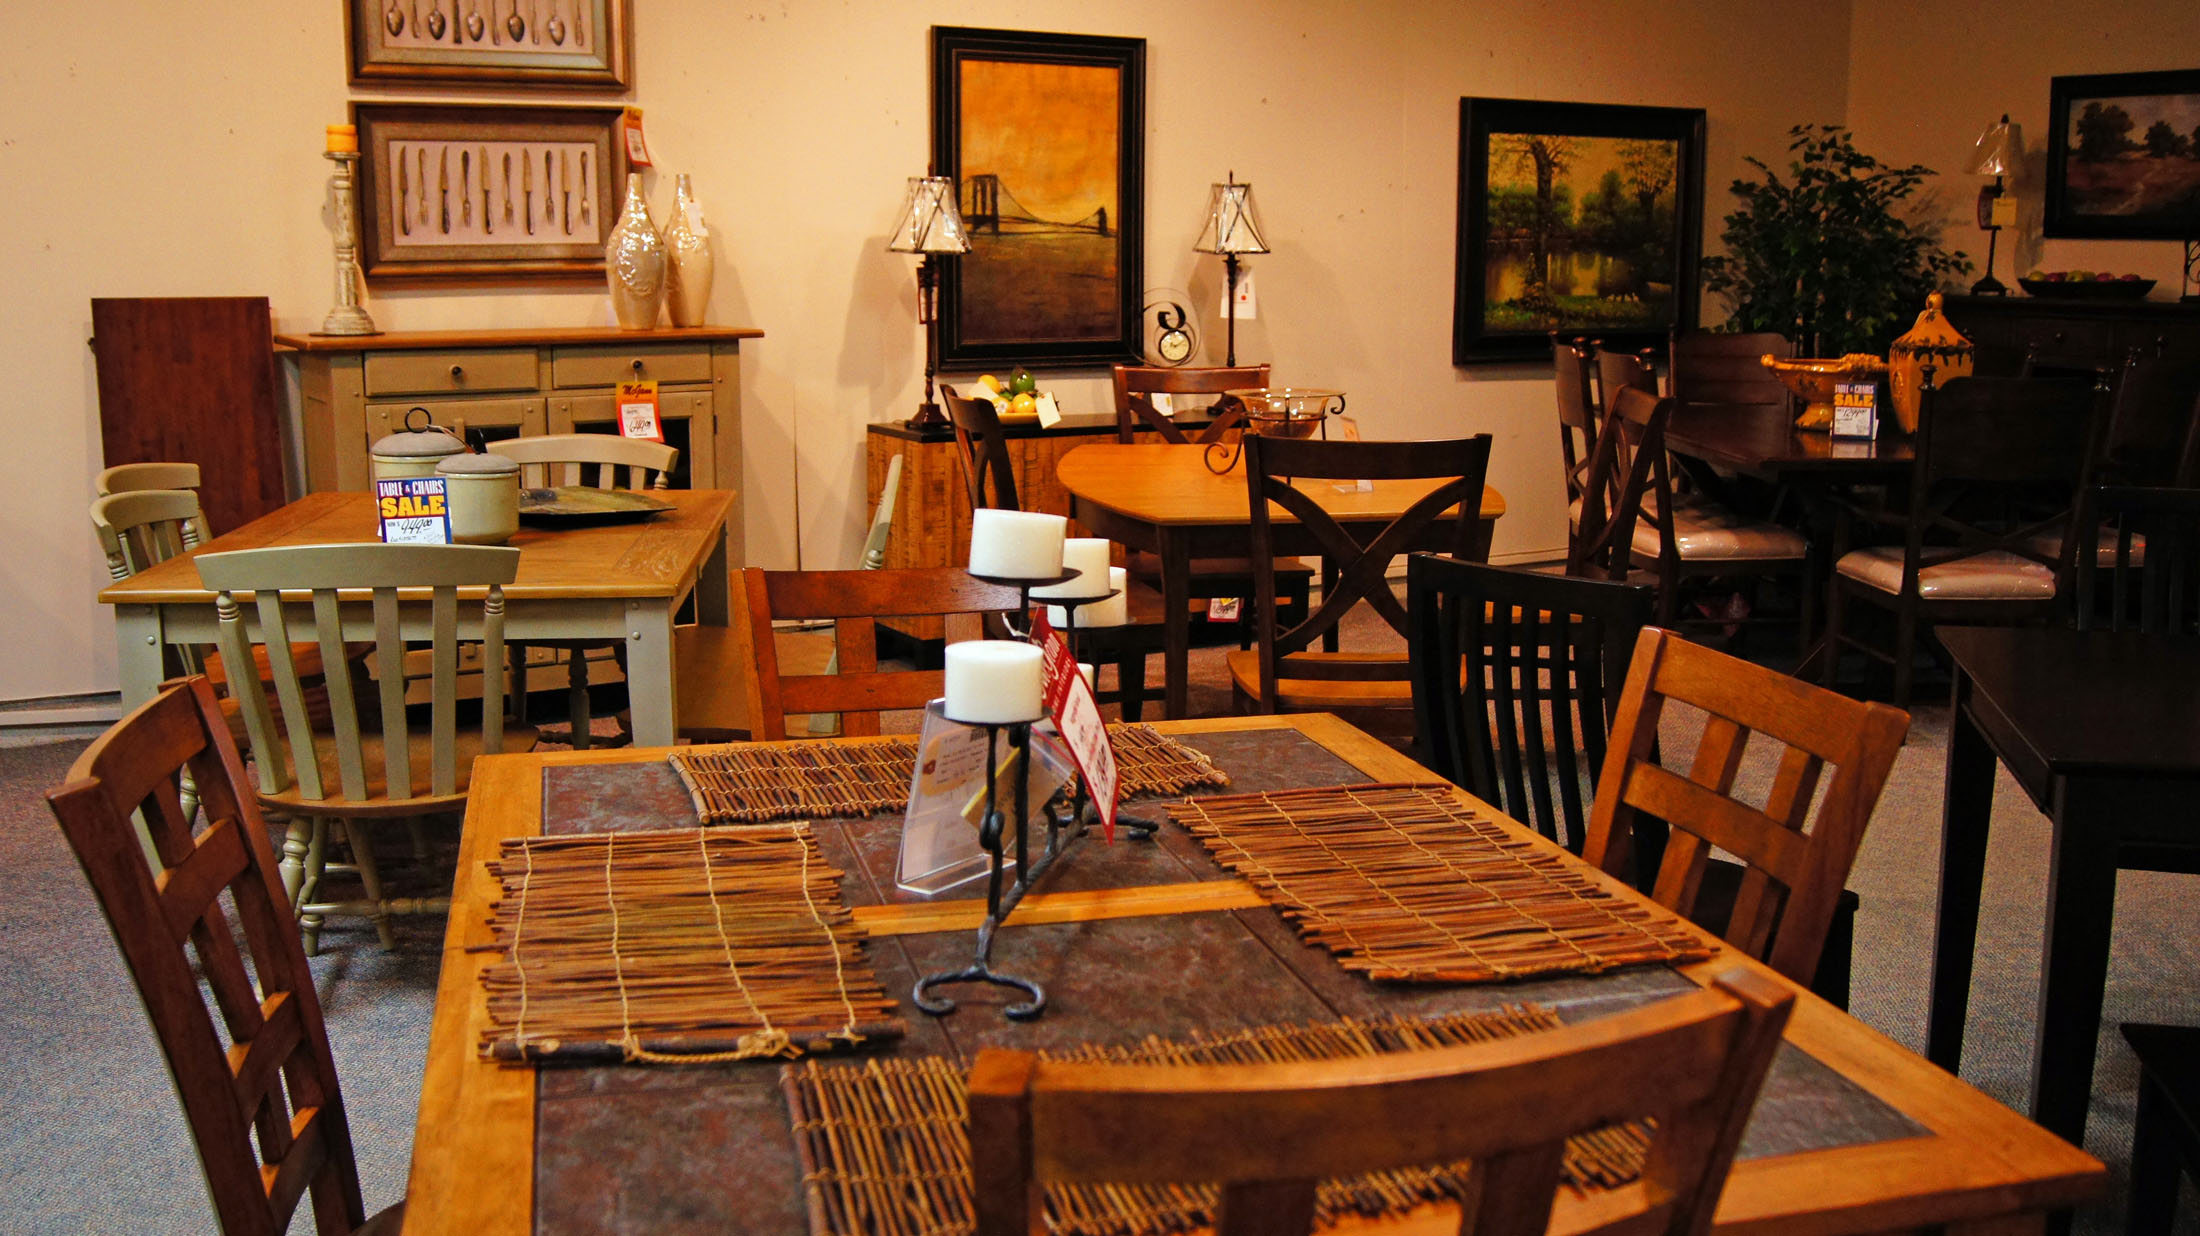 Mcgann Furniture Home Store Of Baraboo Wisconsin Wisconsin Travel Guide